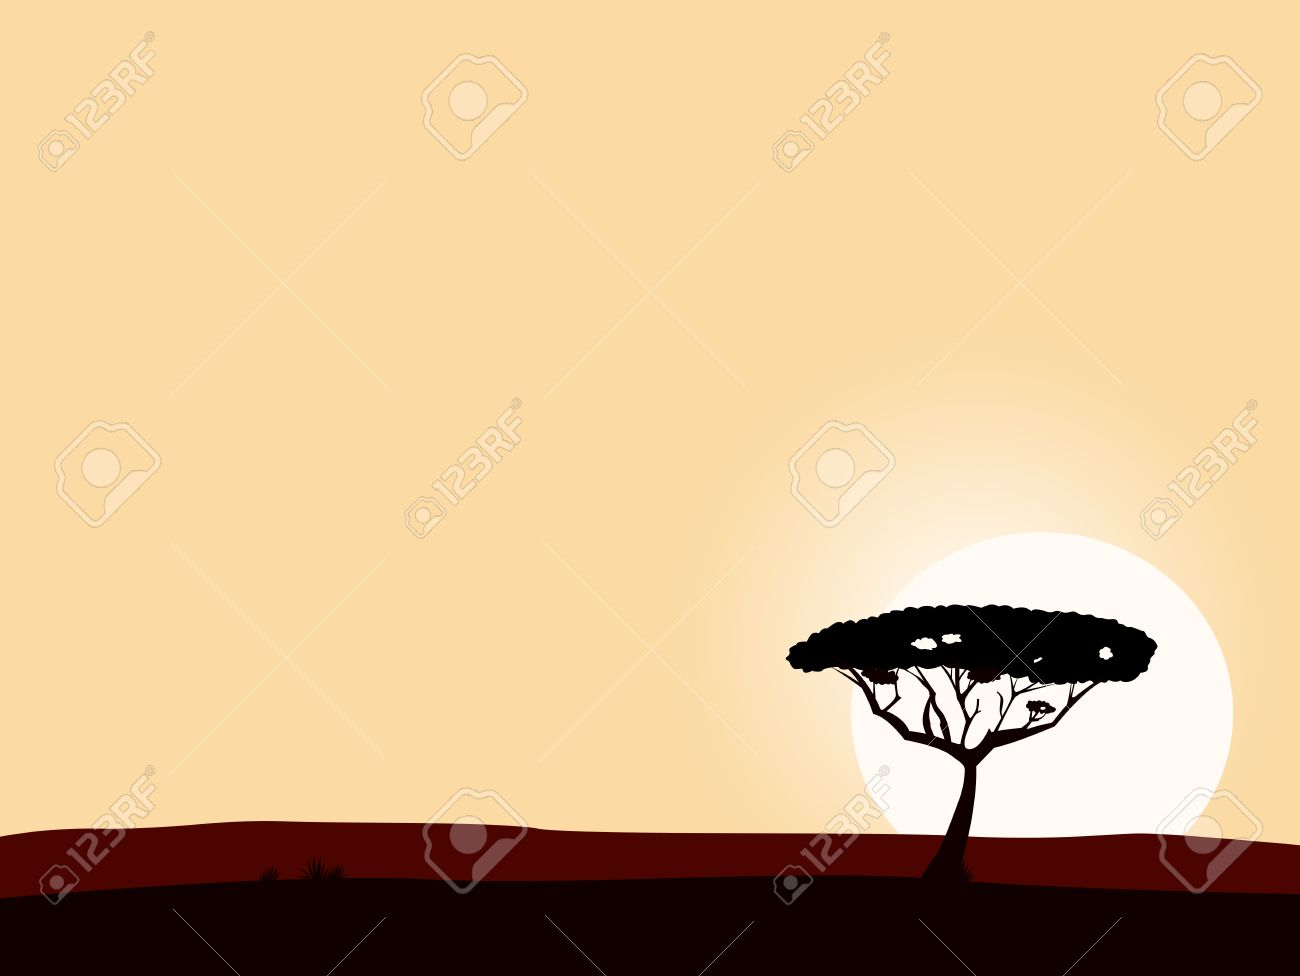 tree silhouette. Vector